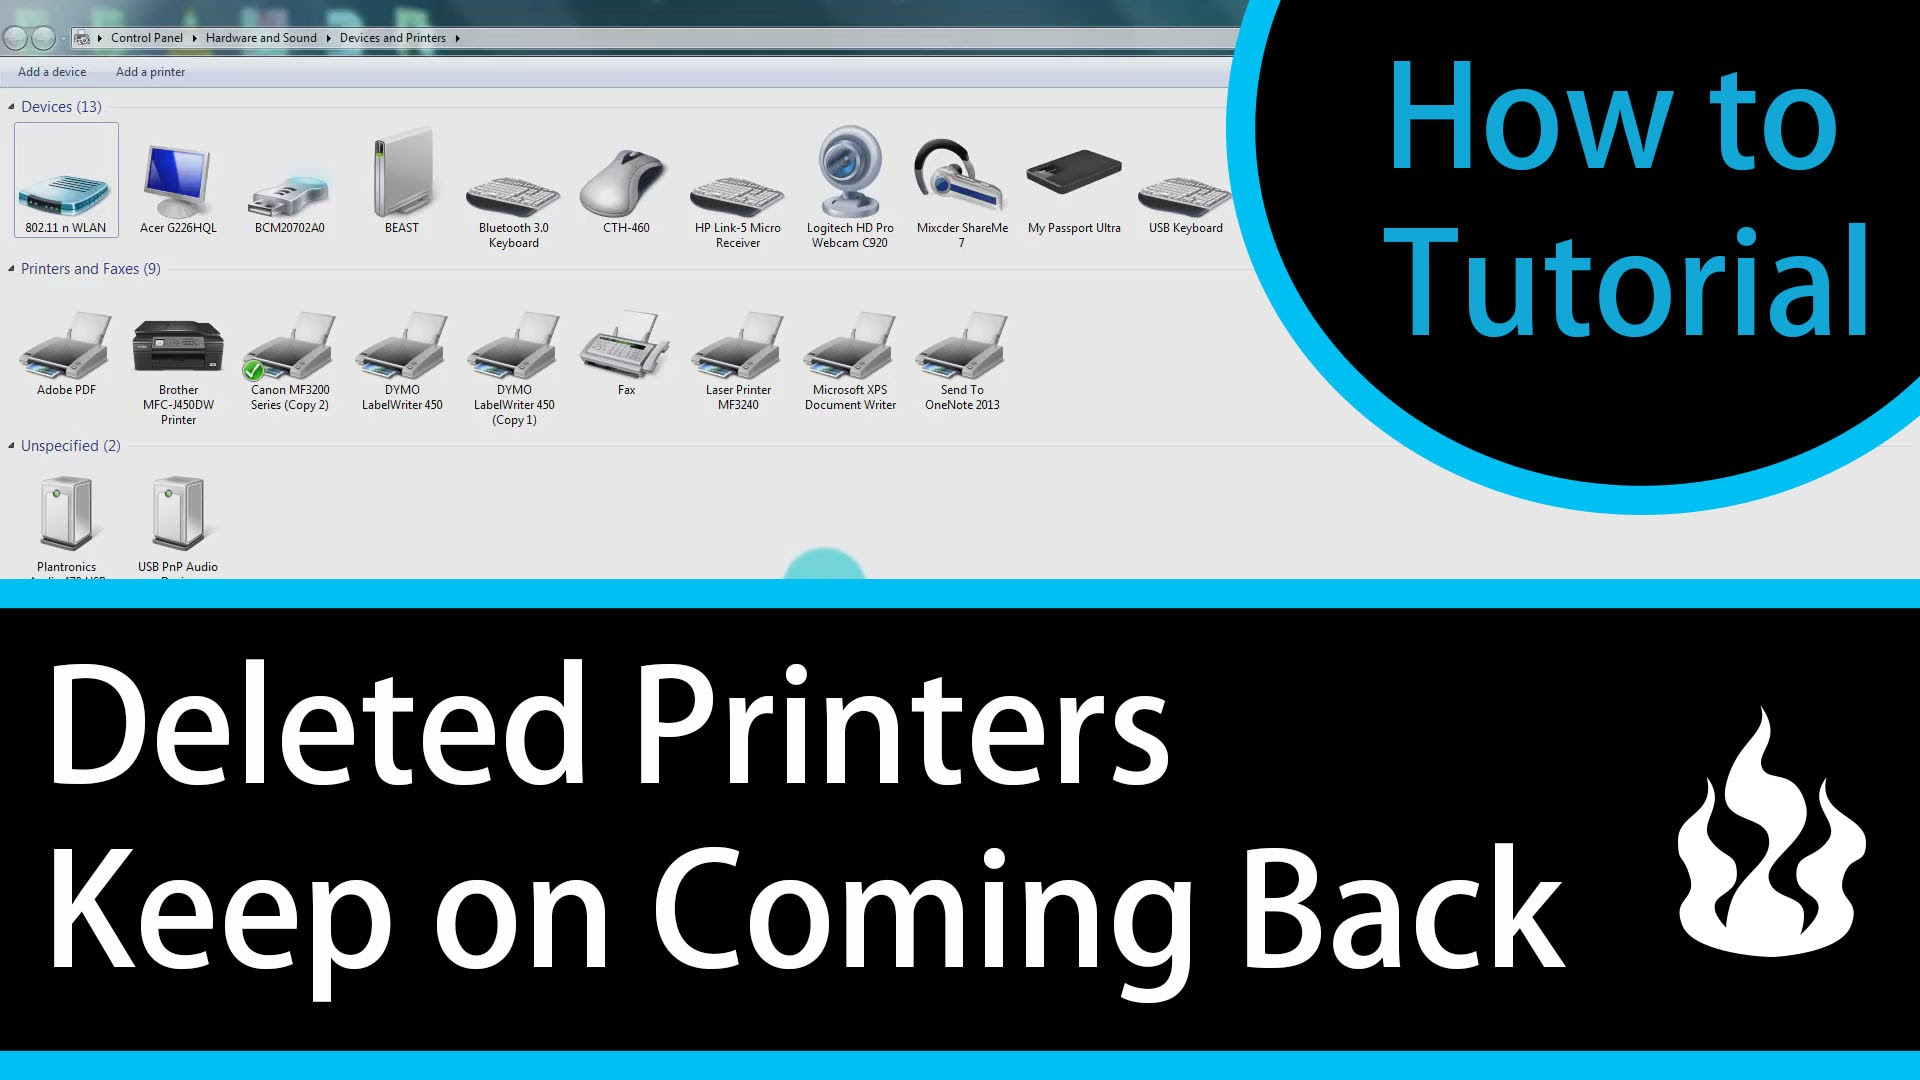 Deleted Printers Keep on Coming Back! How To Permanently Delete Printers